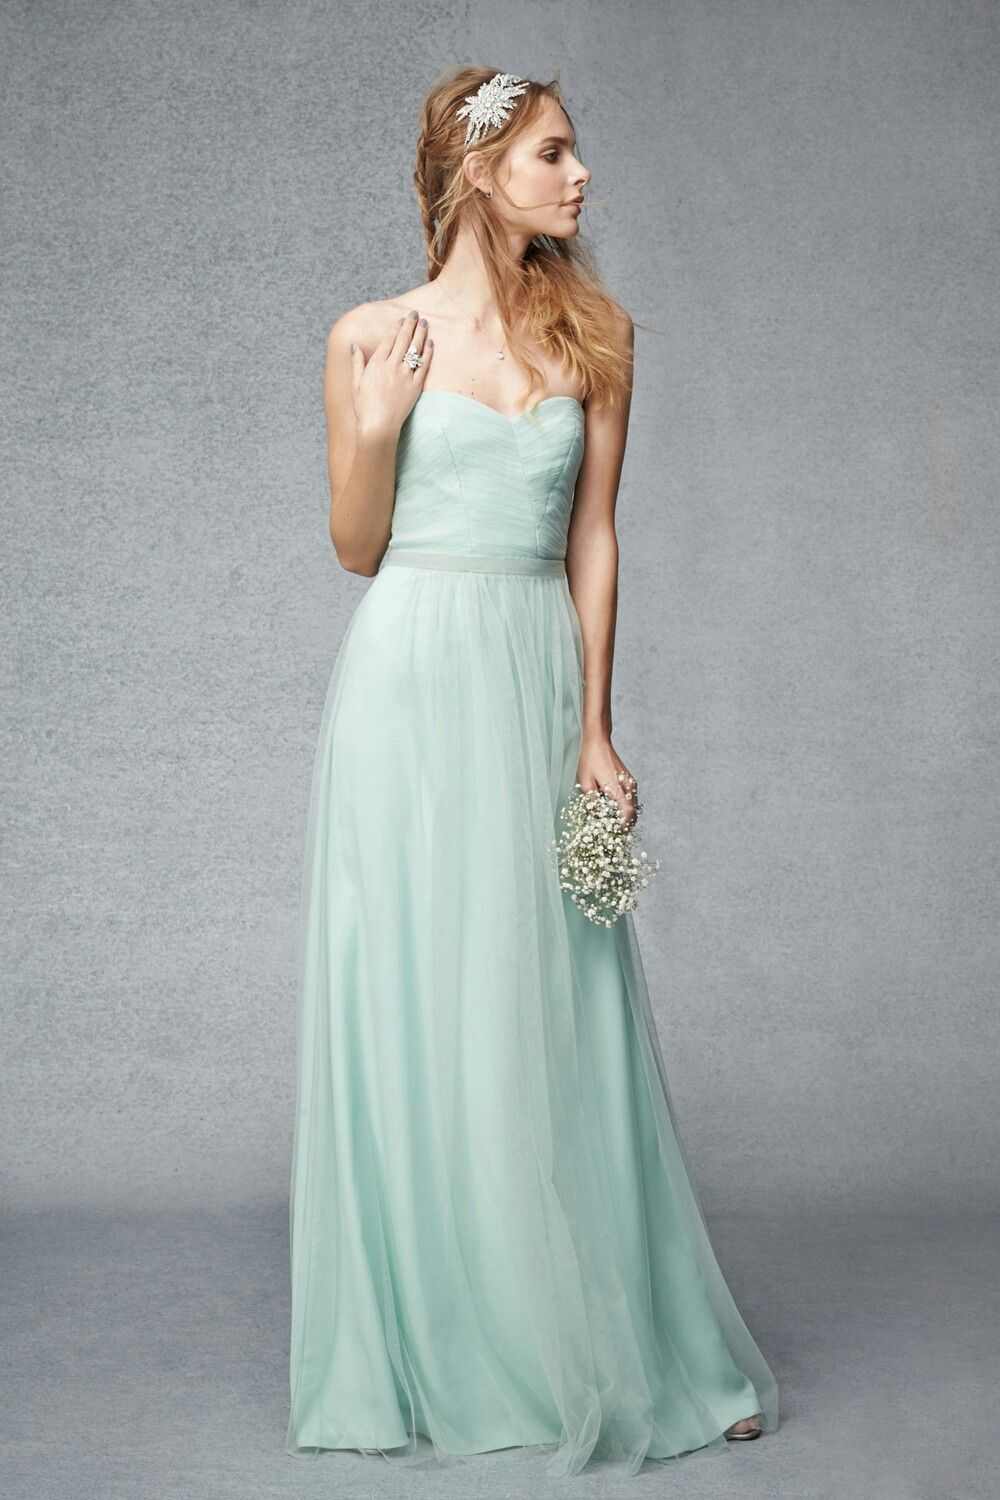 Pin by gypsy spell on bridesmaids pinterest explore fall bridesmaid dresses and more fall bridesmaid dressesjunior bridesmaidsmint green ombrellifo Image collections